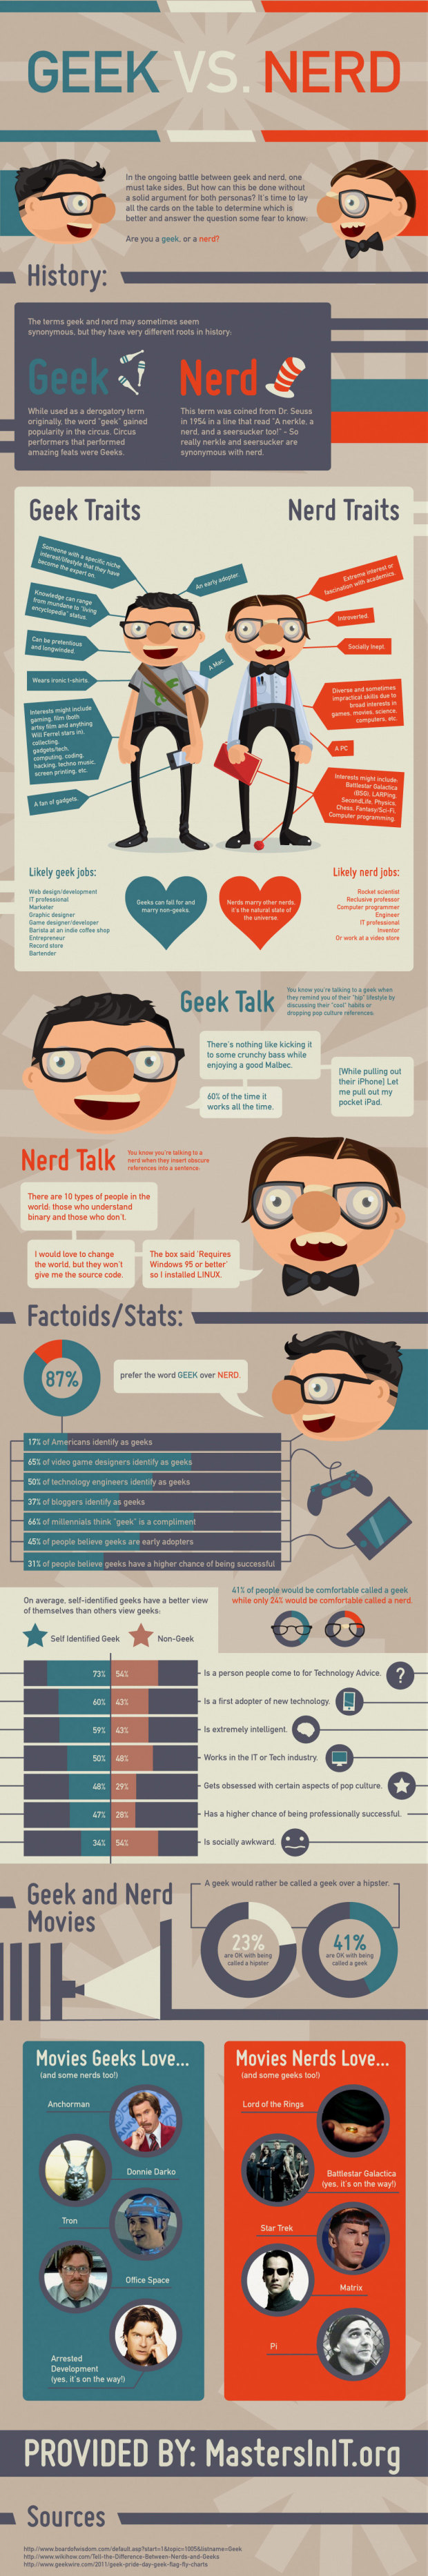 Understanding the Difference Between Geeks and Nerds - Infographic